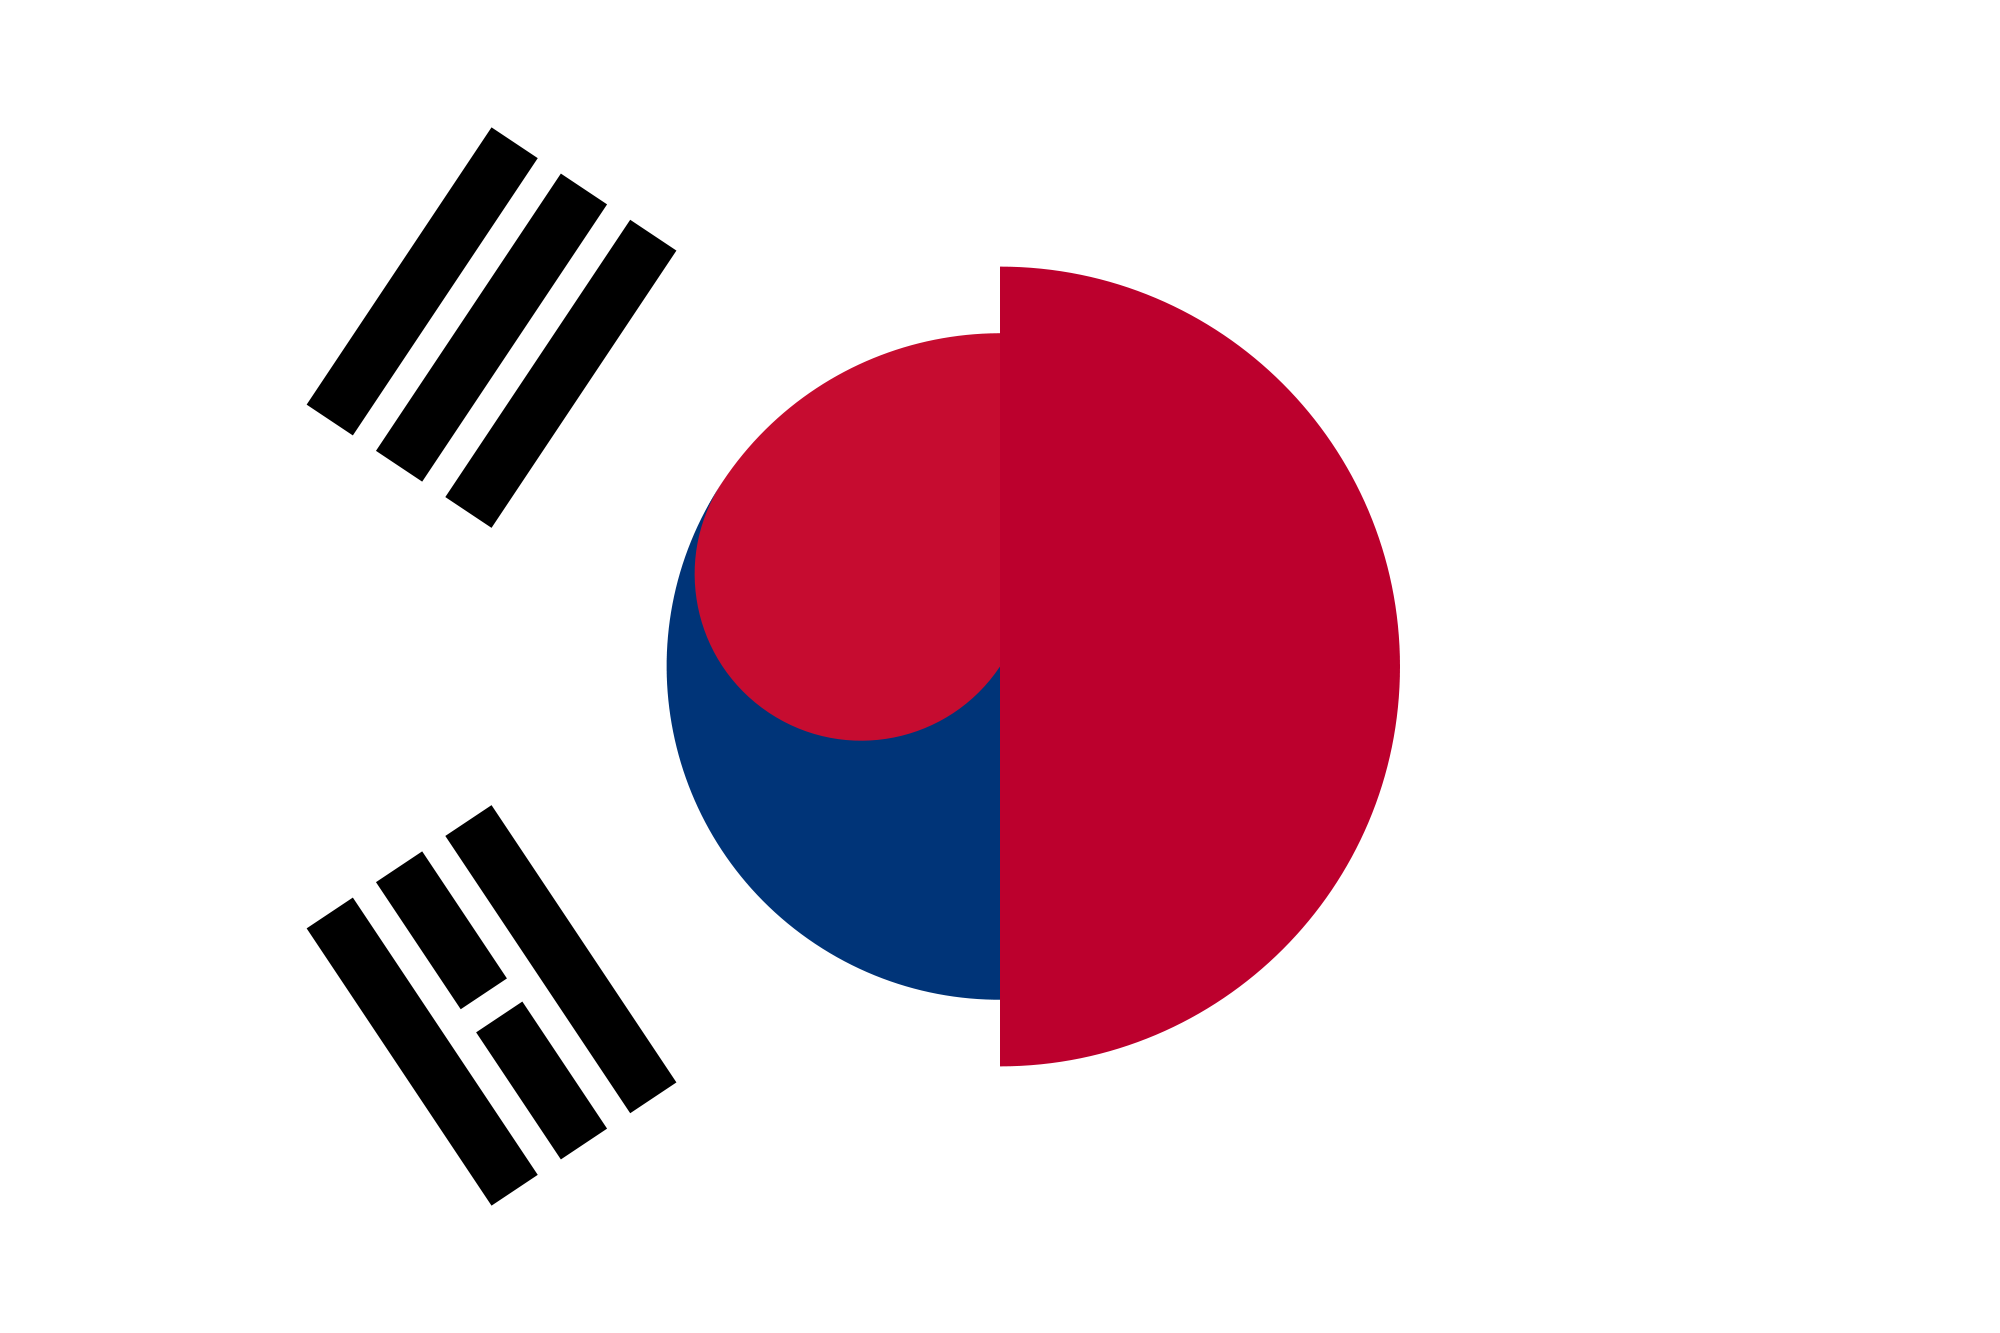 FileFlag Of Japan And South Koreapng Wikimedia Commons